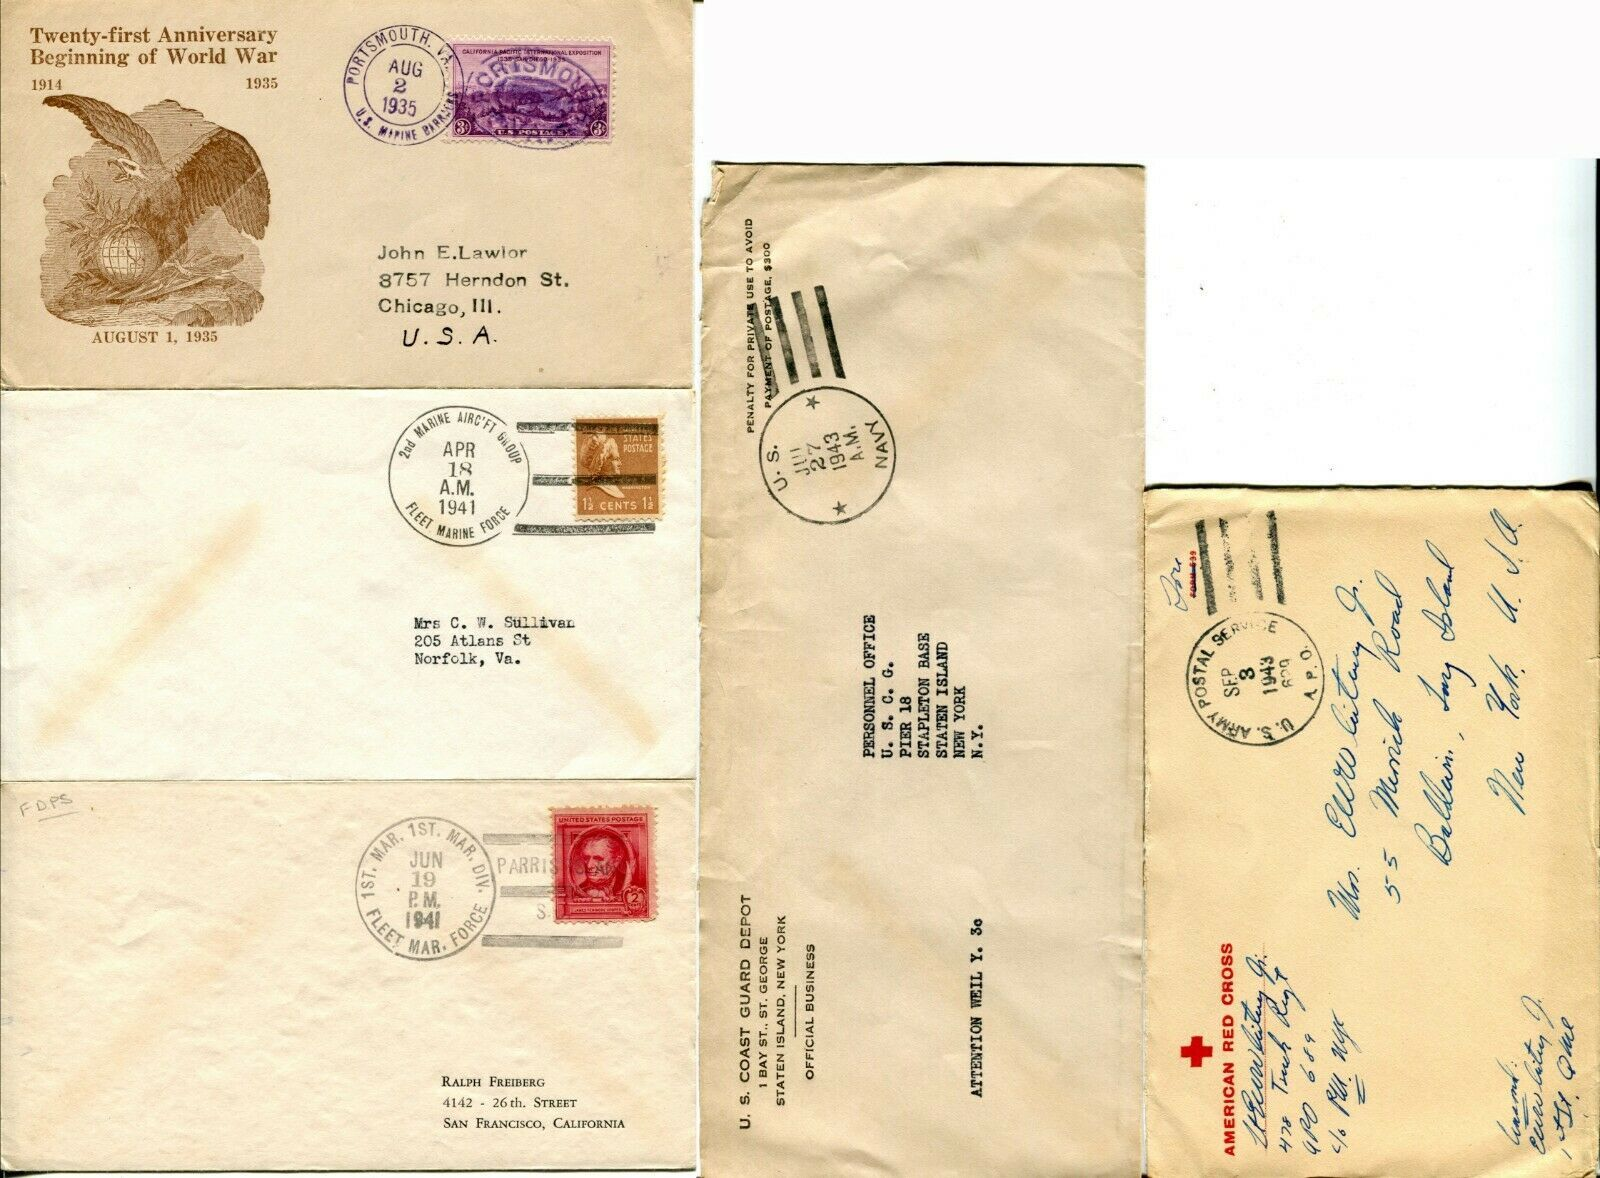 Marine US Army American Red Cross WWII Navy Military Cover Postage Collection